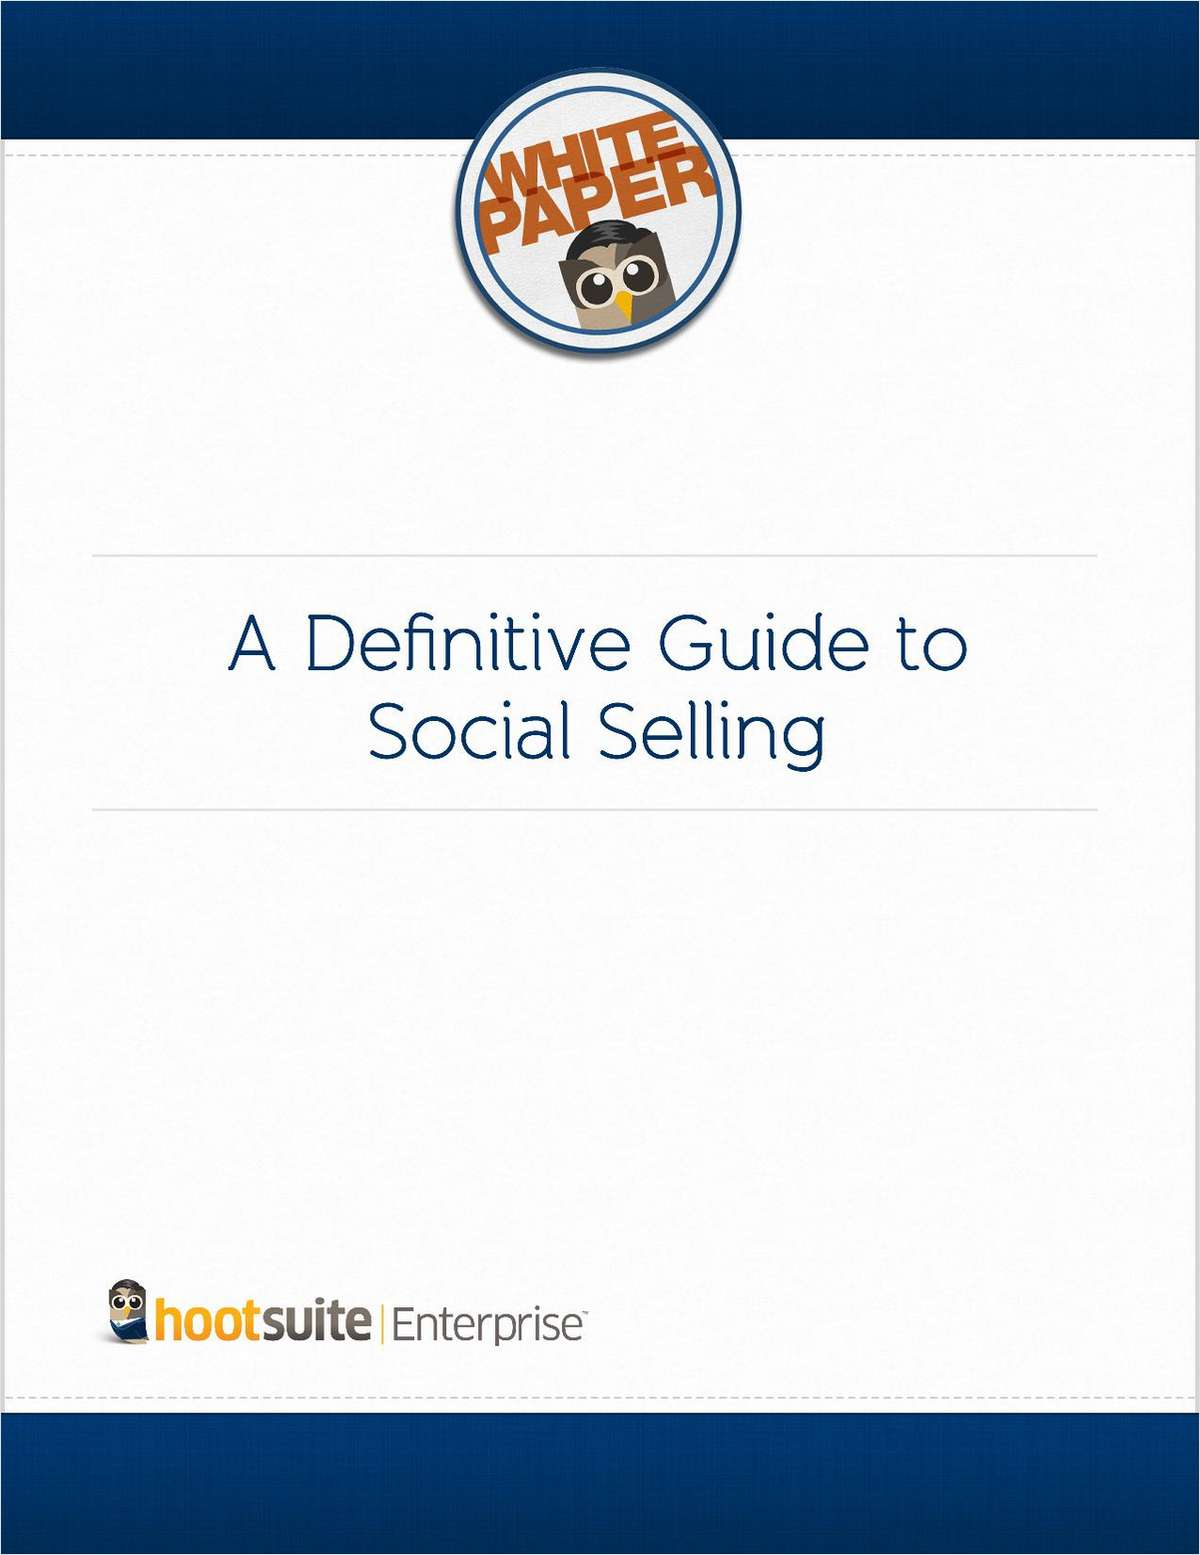 A Definitive Guide to Social Selling